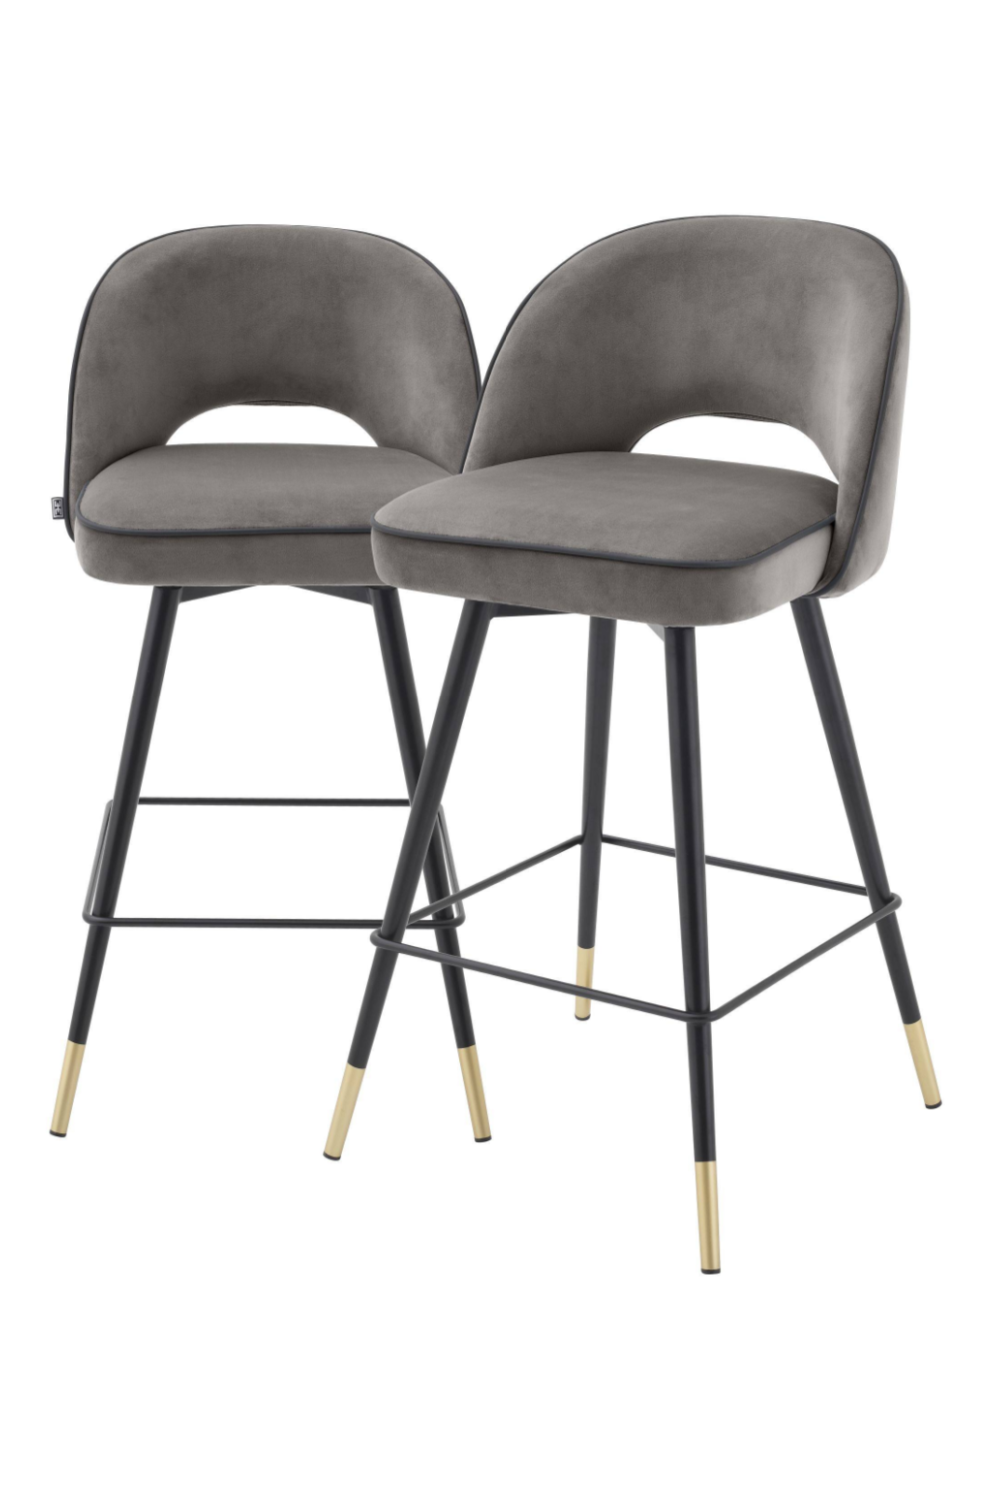 Gray Swivel Counter Stool Set of 2 | Eichholtz Cliff